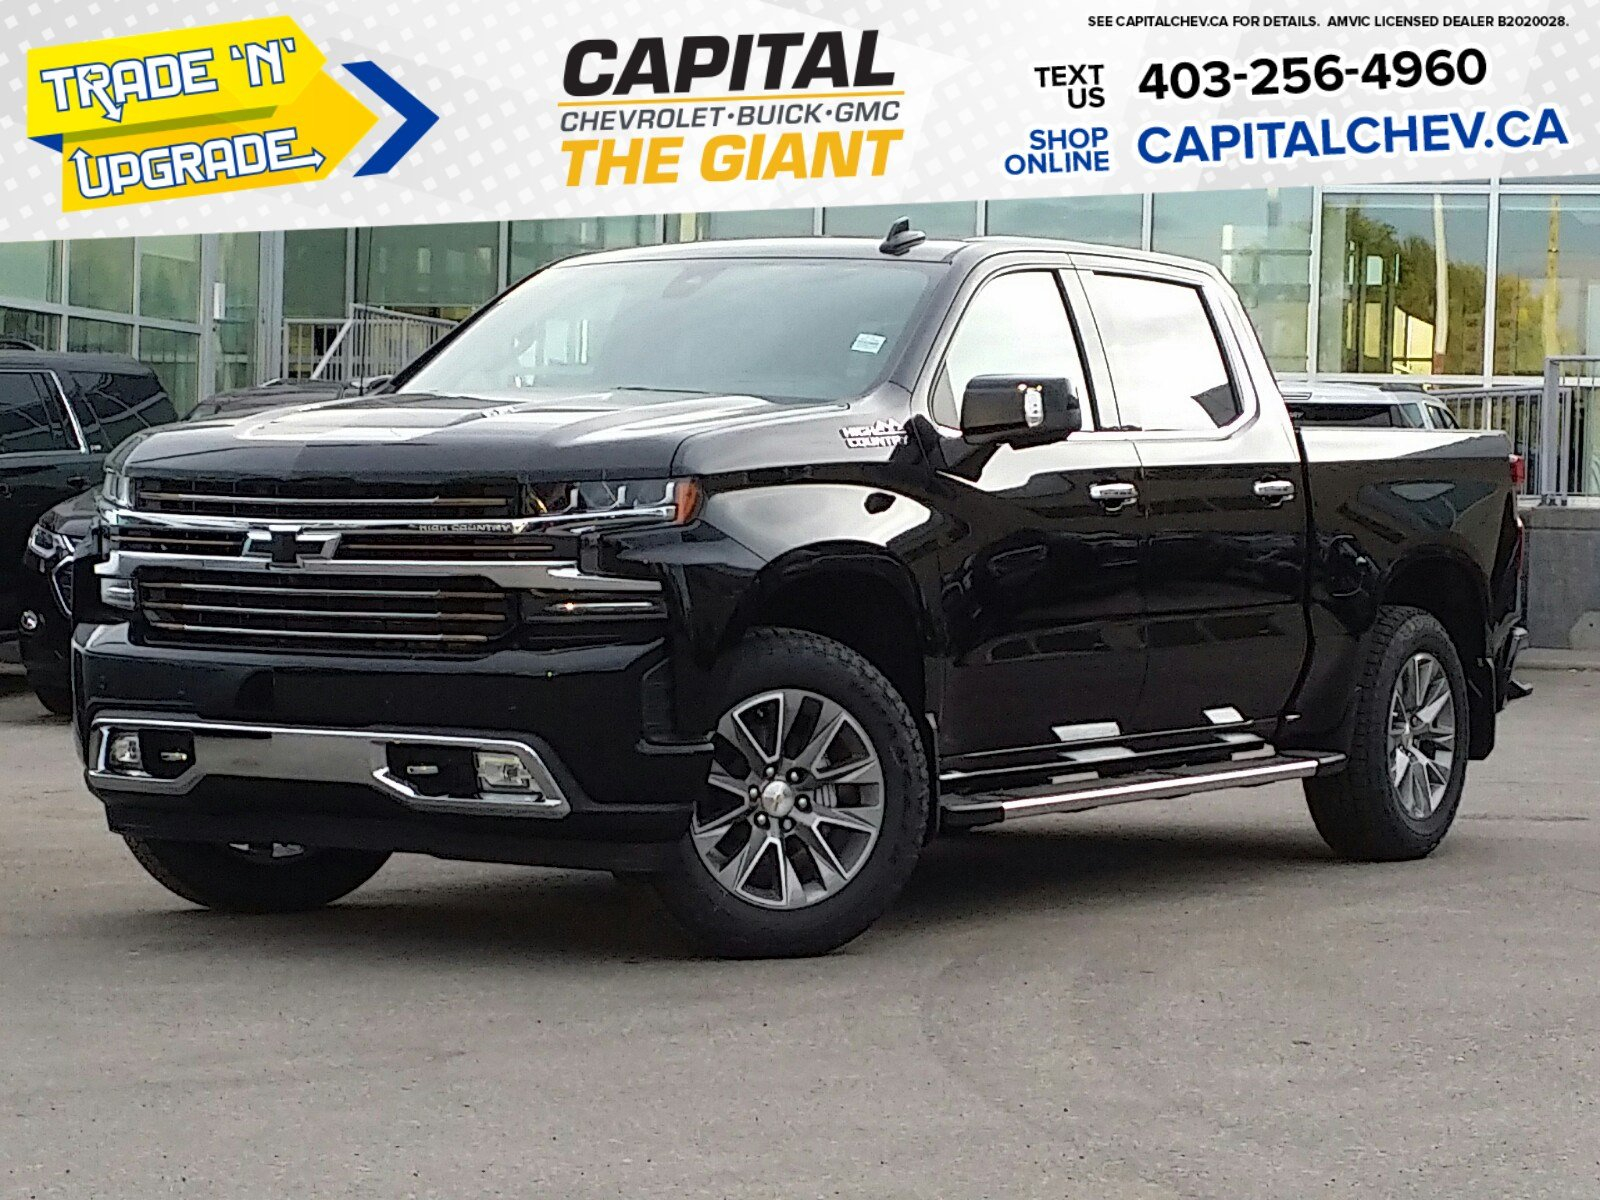 New 2020 Chevrolet Silverado 1500 High Country 4Wd Stock: 40076 2021 Chevy Silverado 1500 Gross Vehicle Weight, Grill Guard, Horsepower